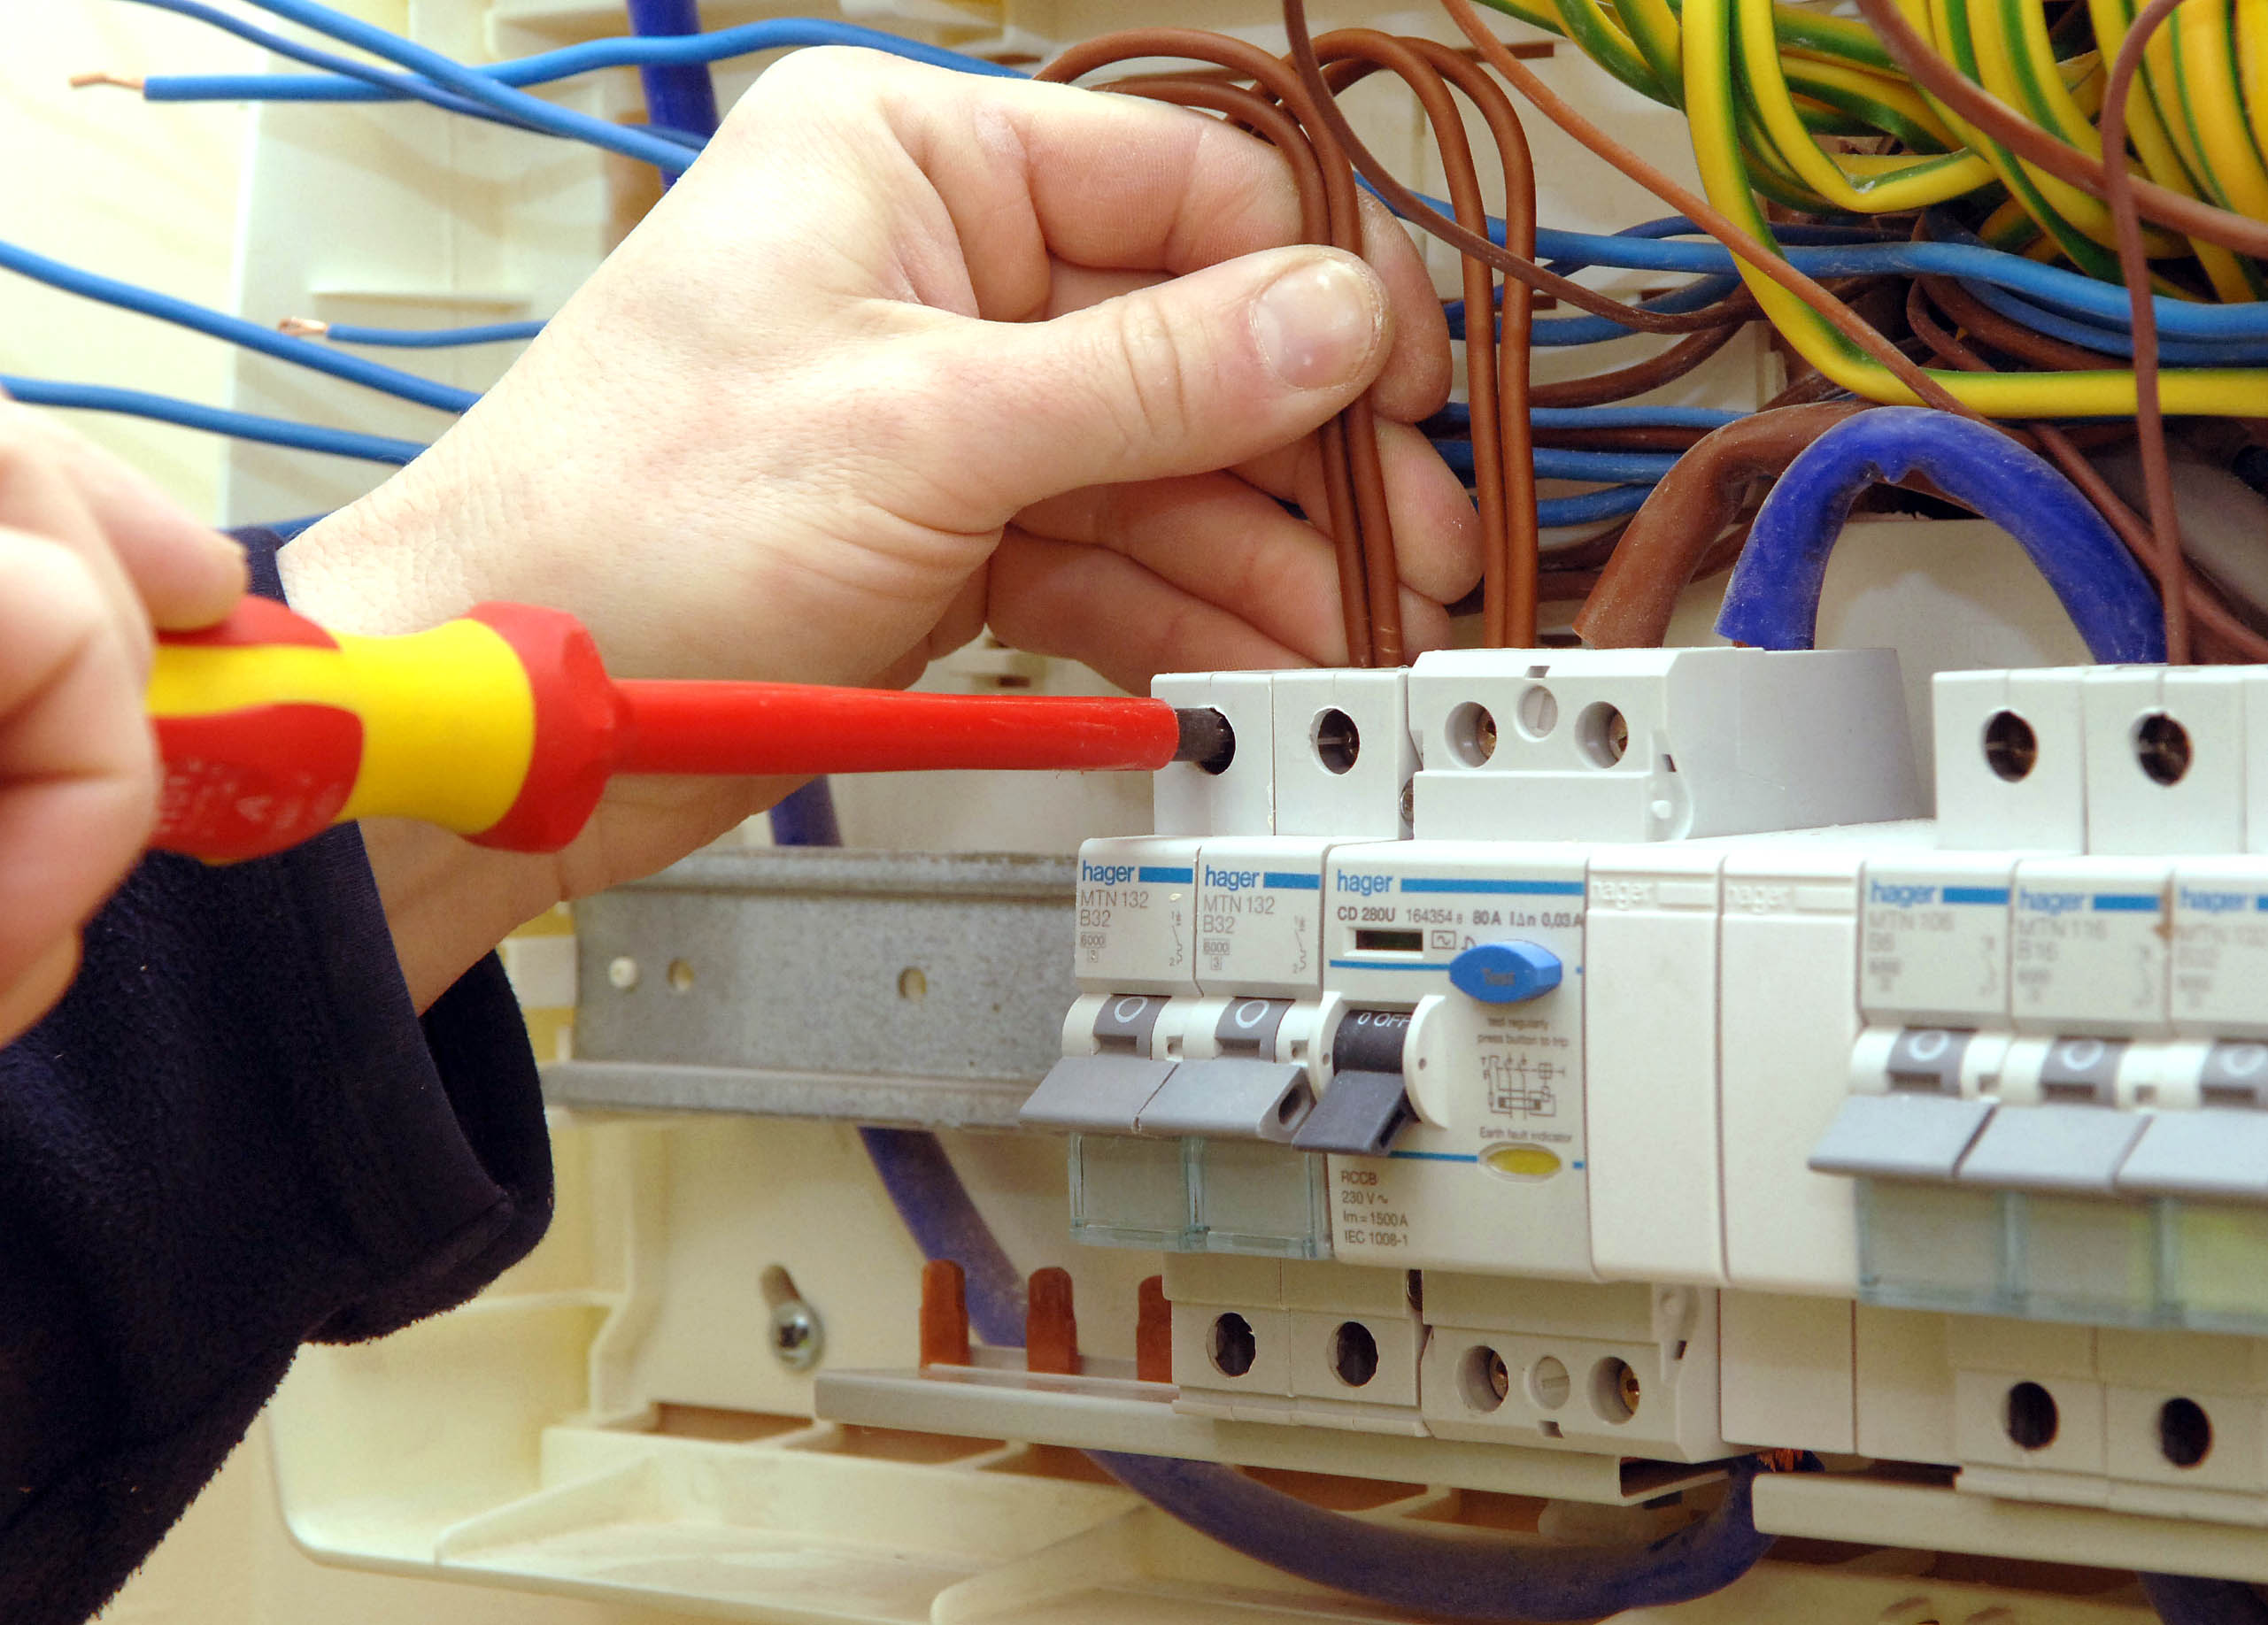 hager rcbo wiring diagram telephone wire fuse box best library electrical services apple home improvements car